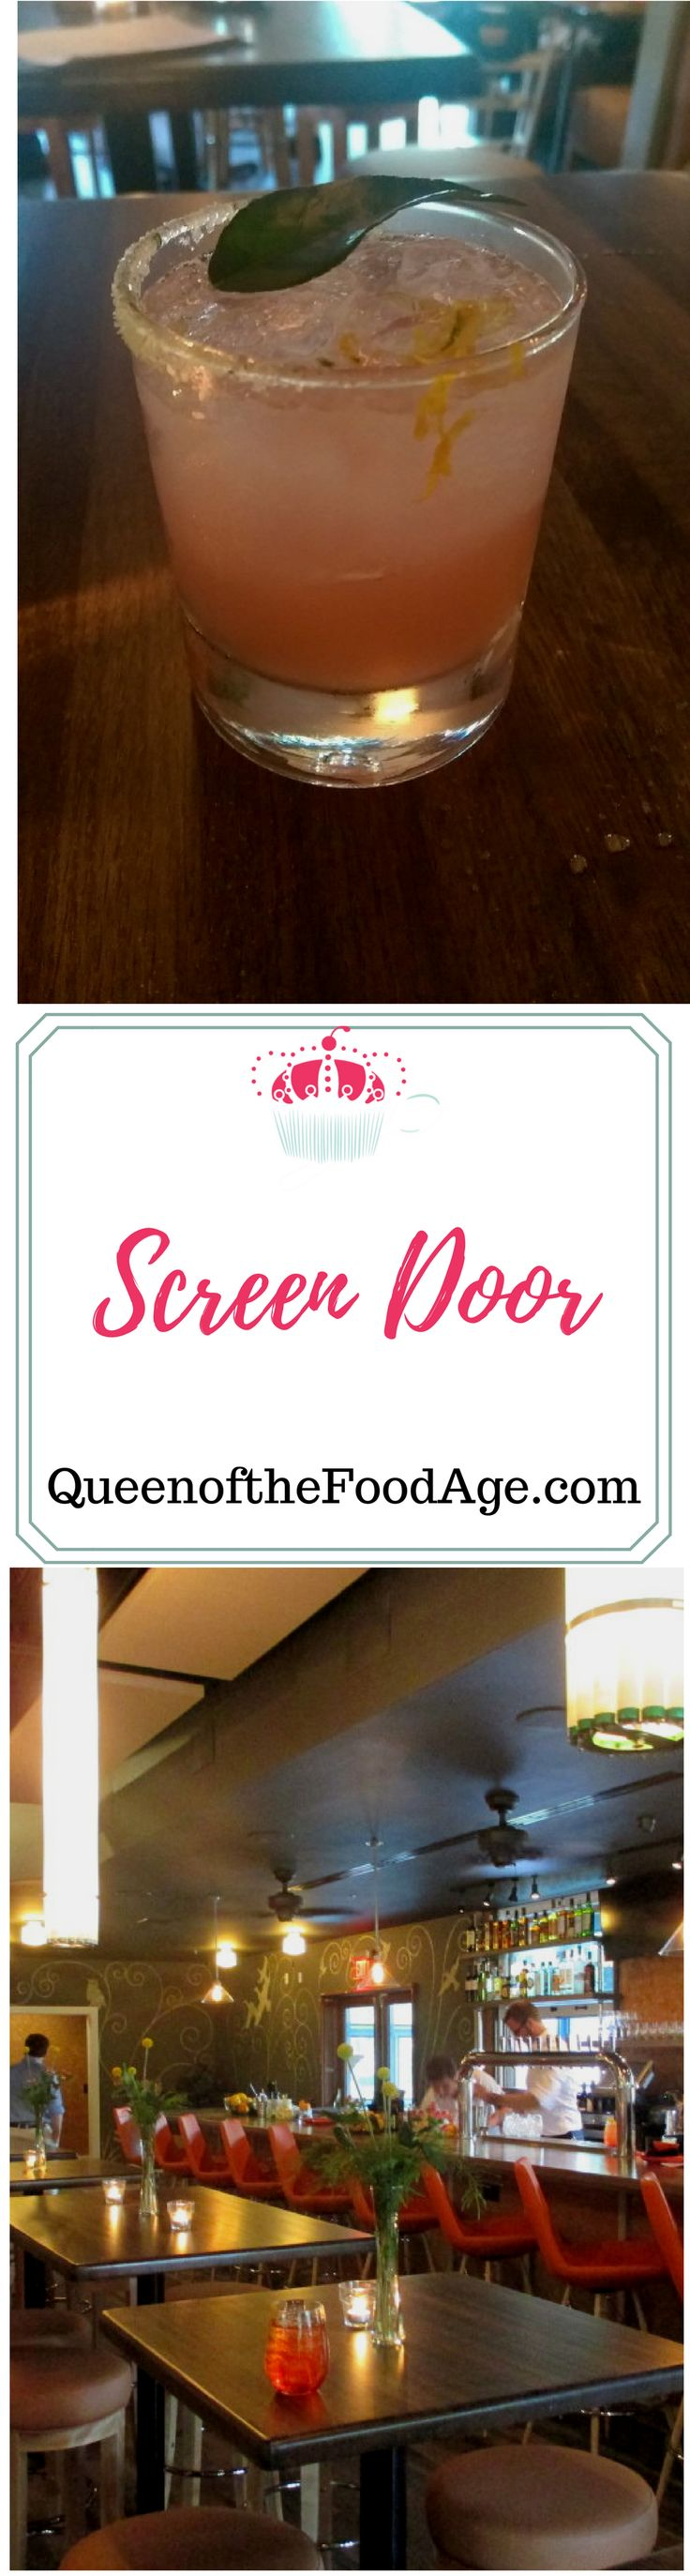 733 Best Queen Of The Food Age Images On Pinterest